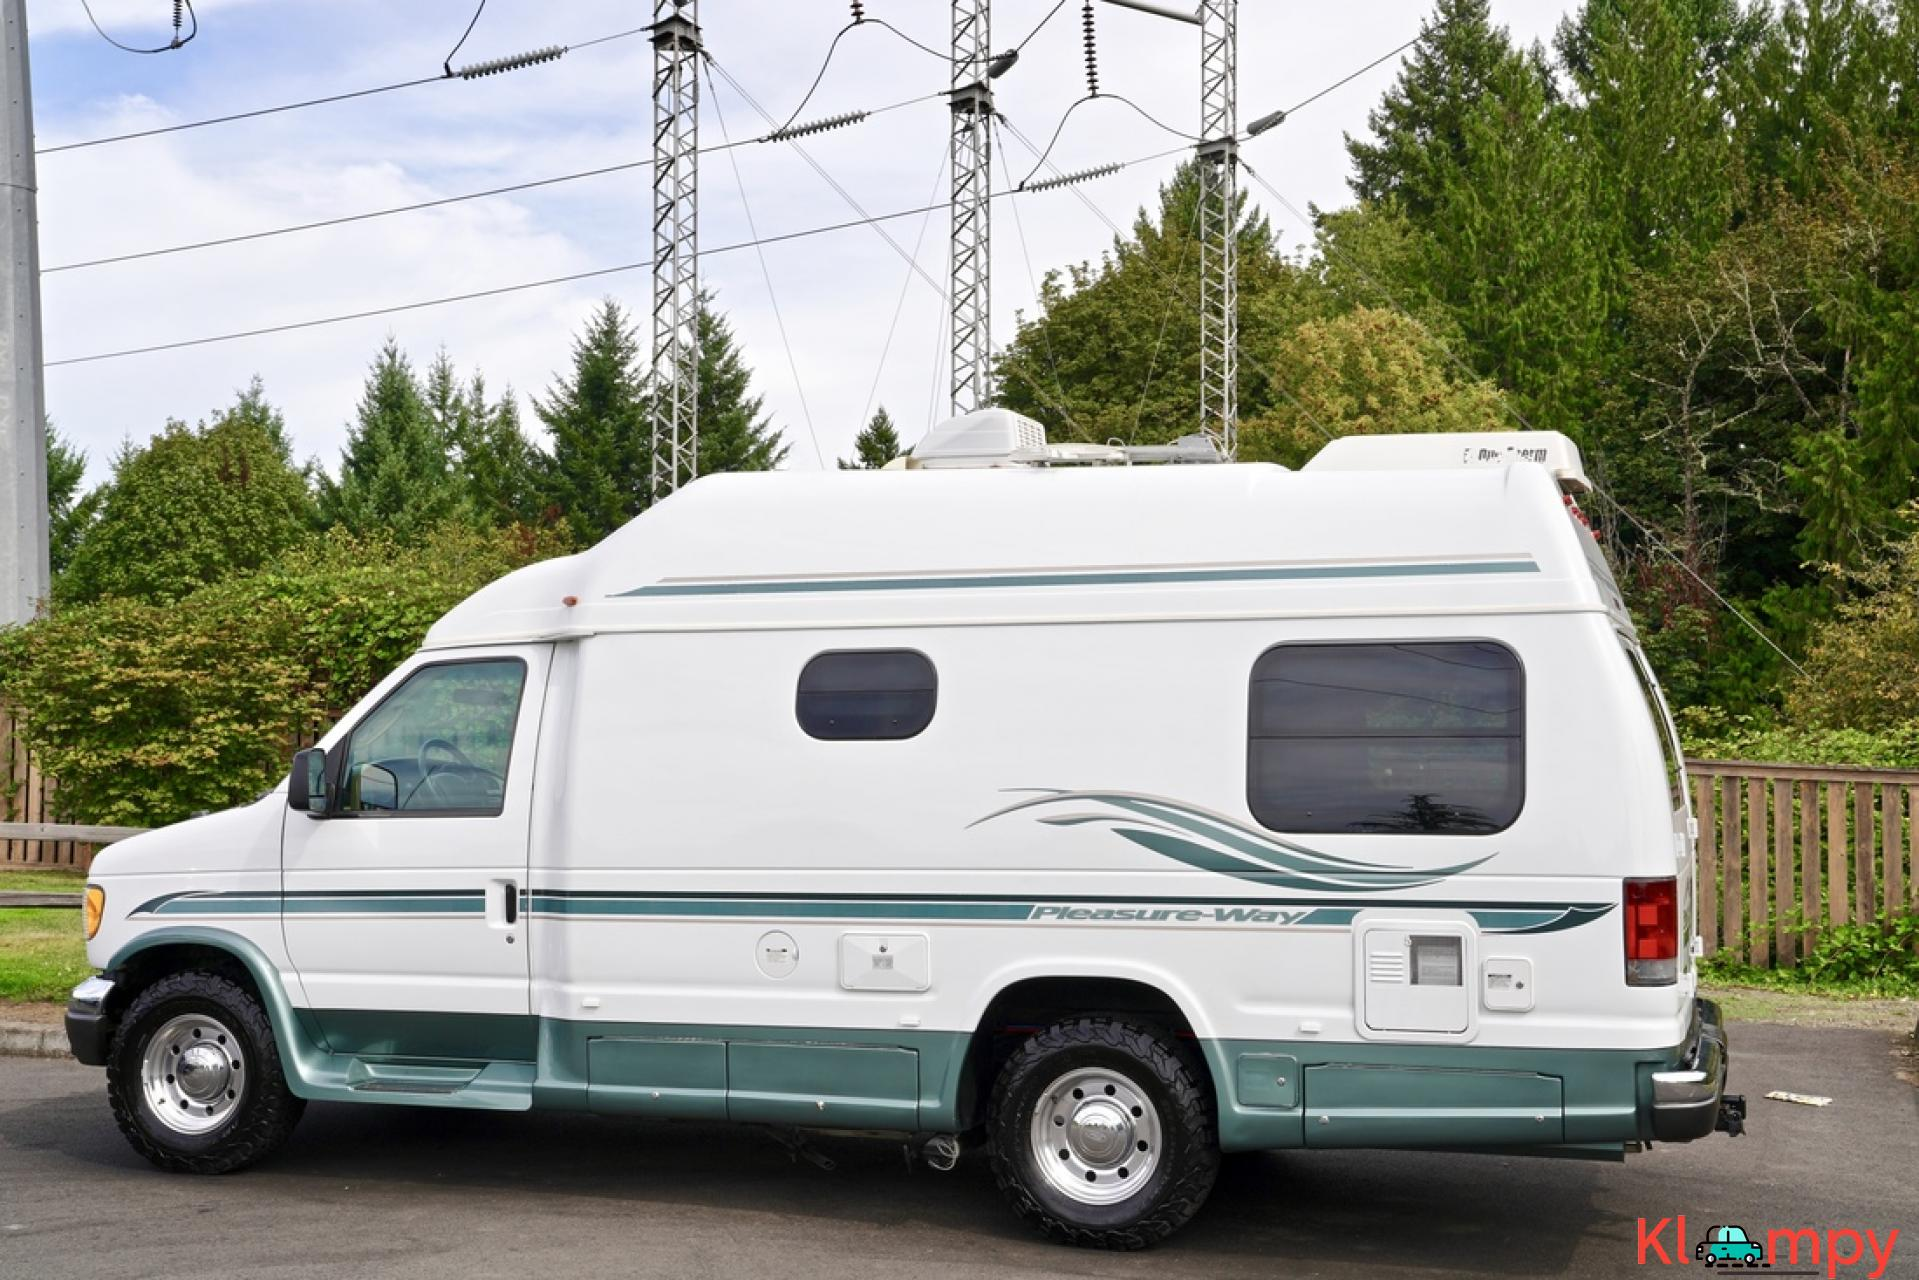 2004 Pleasure-Way Excel 20' Class B - 2/23